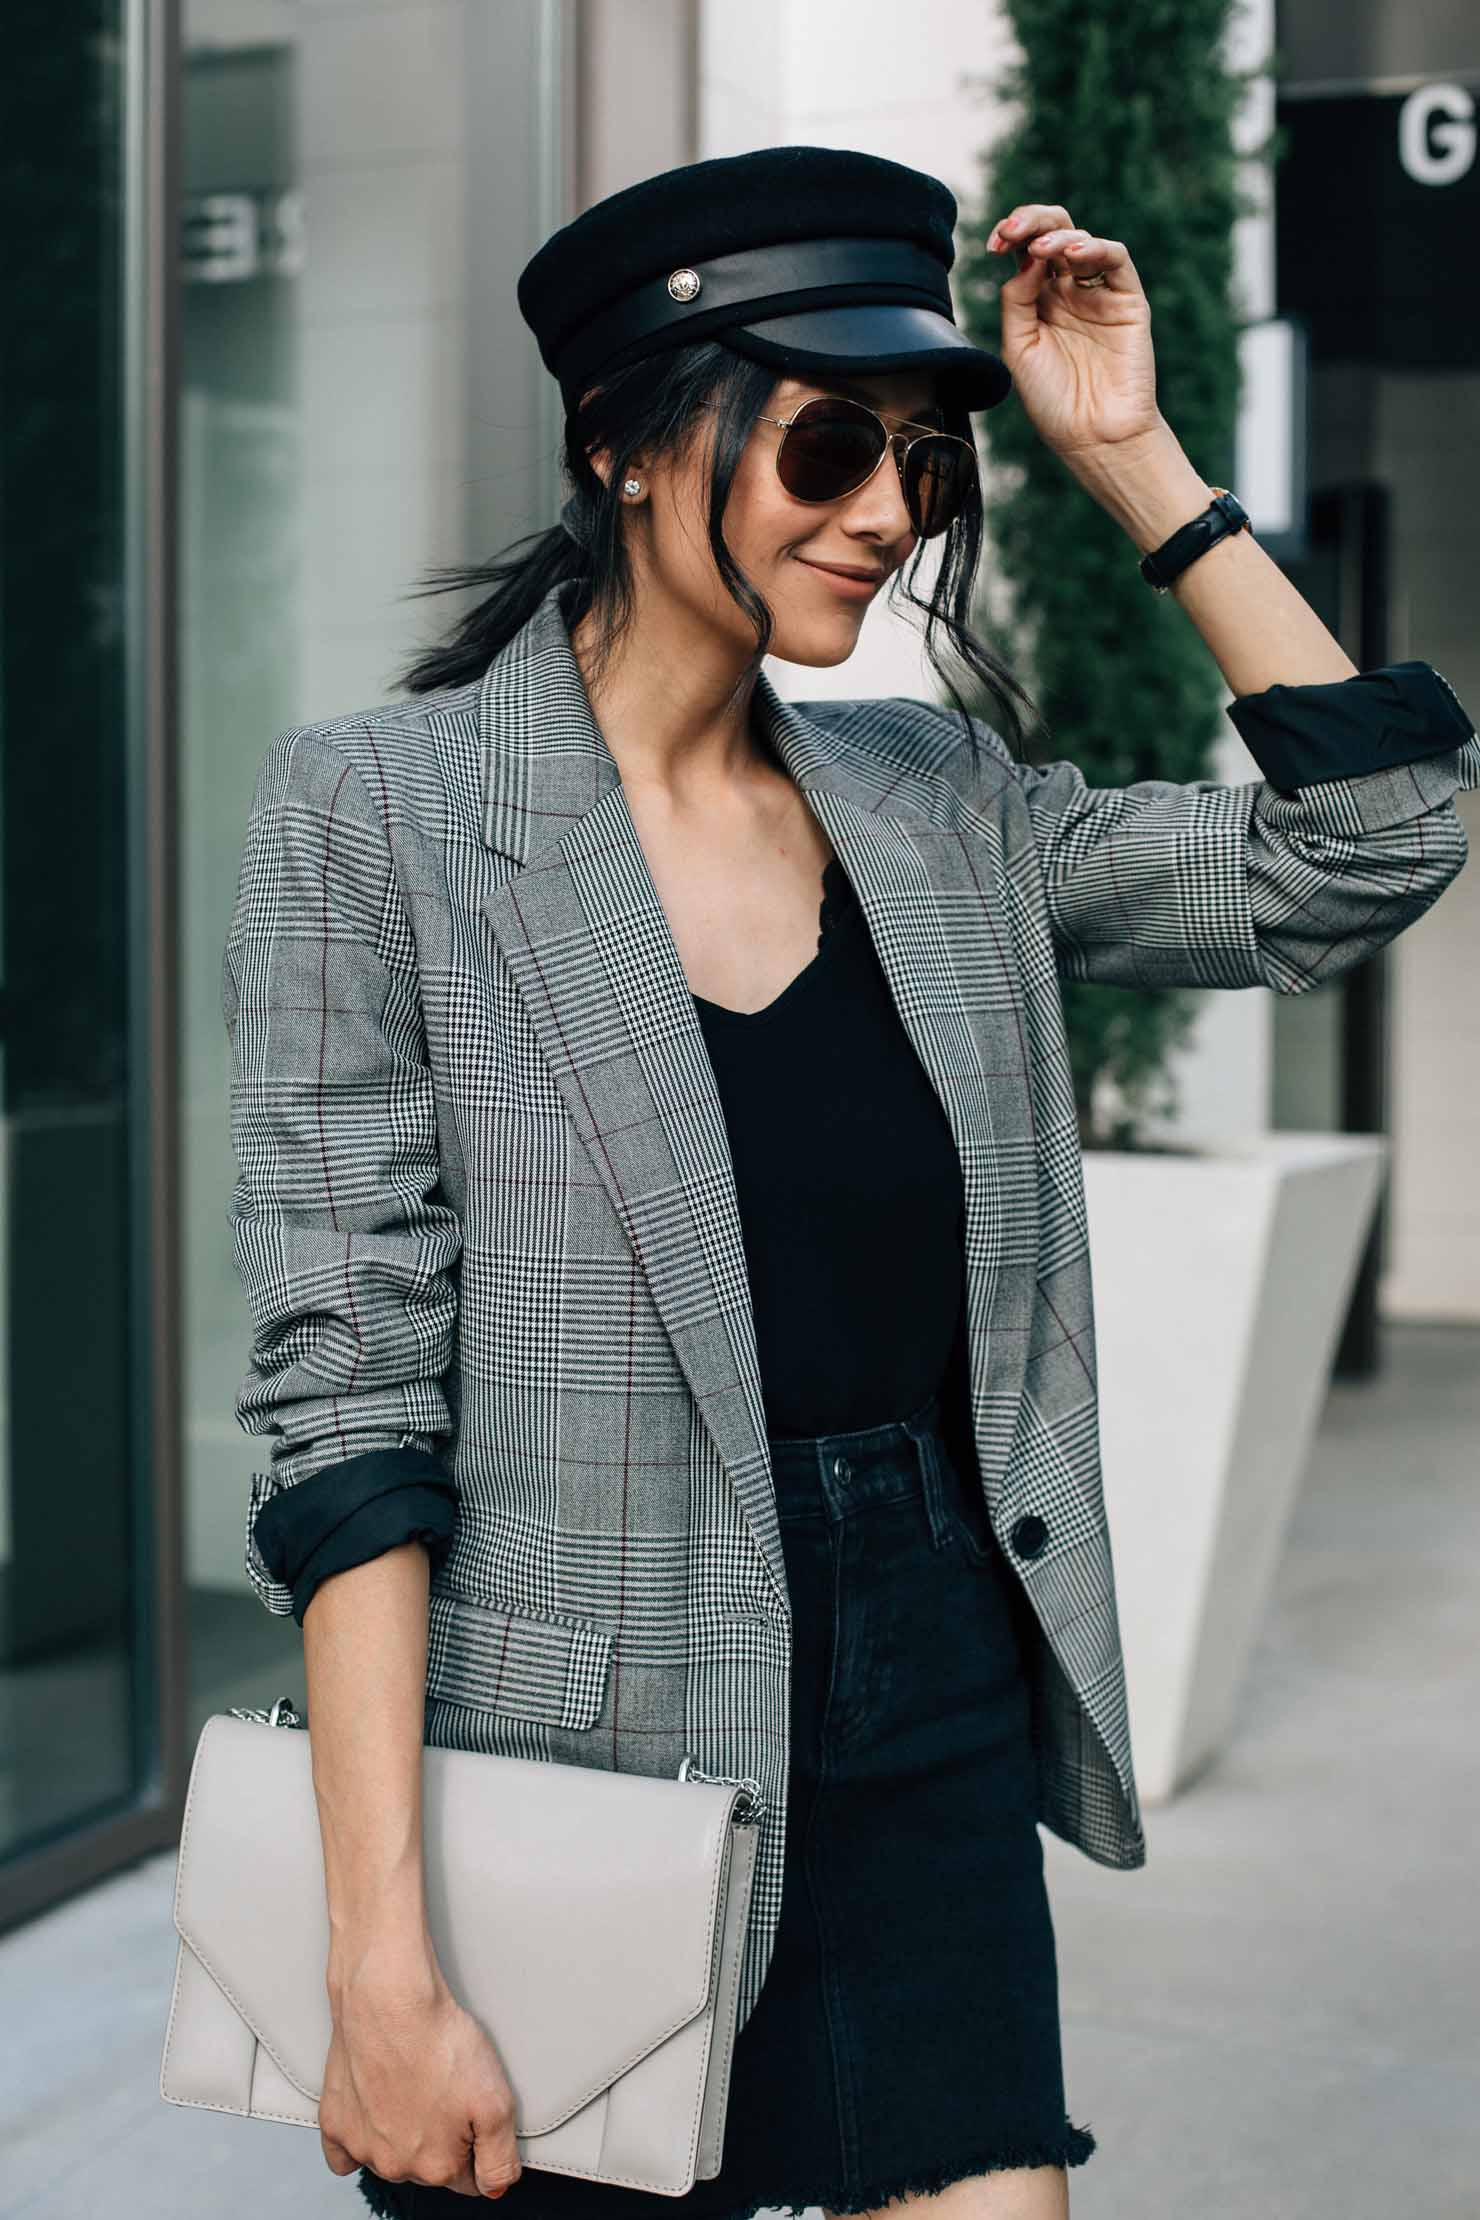 Lilly Beltran of Style blog Daily Craving wearing a baker boy hat and plaid blazer